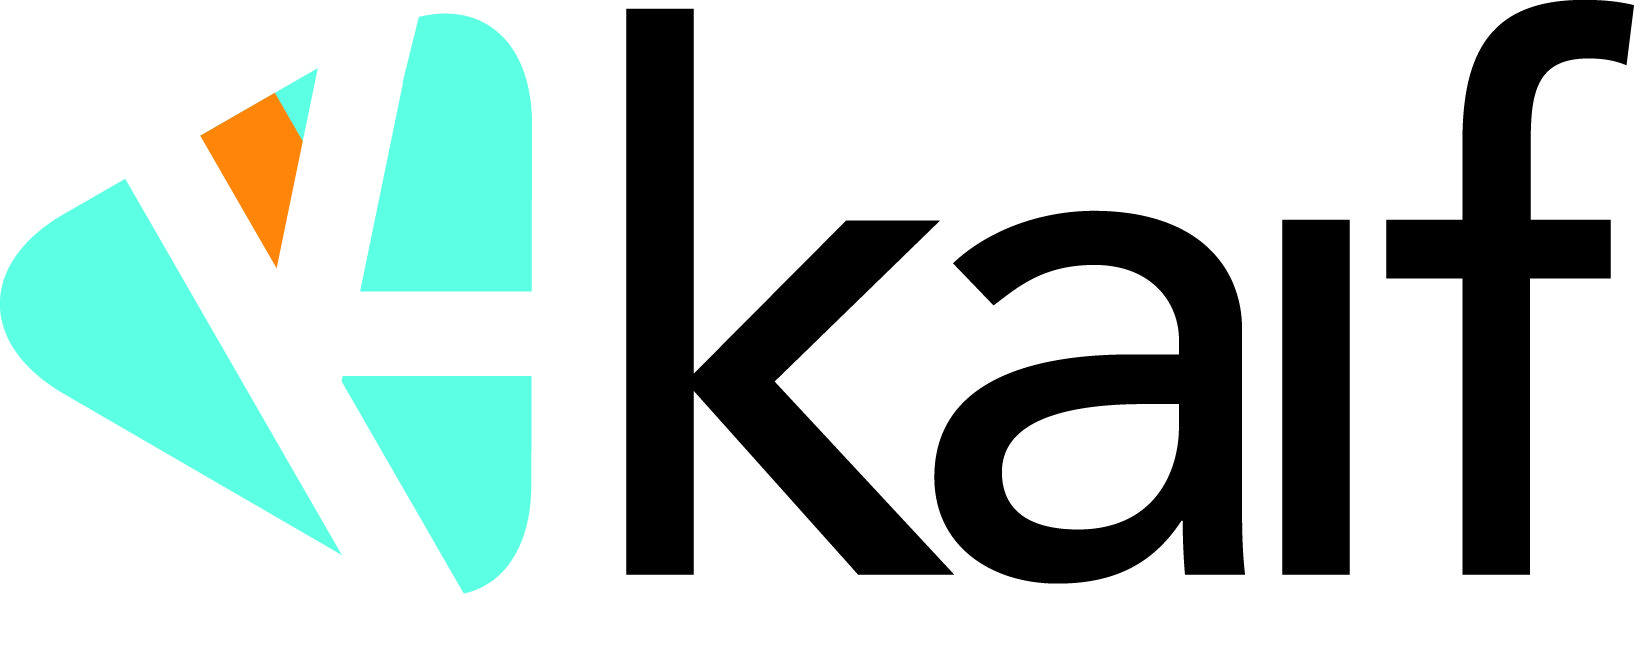 'Kaif Snowboards', by Gregory Kustanovich. Logos, Name